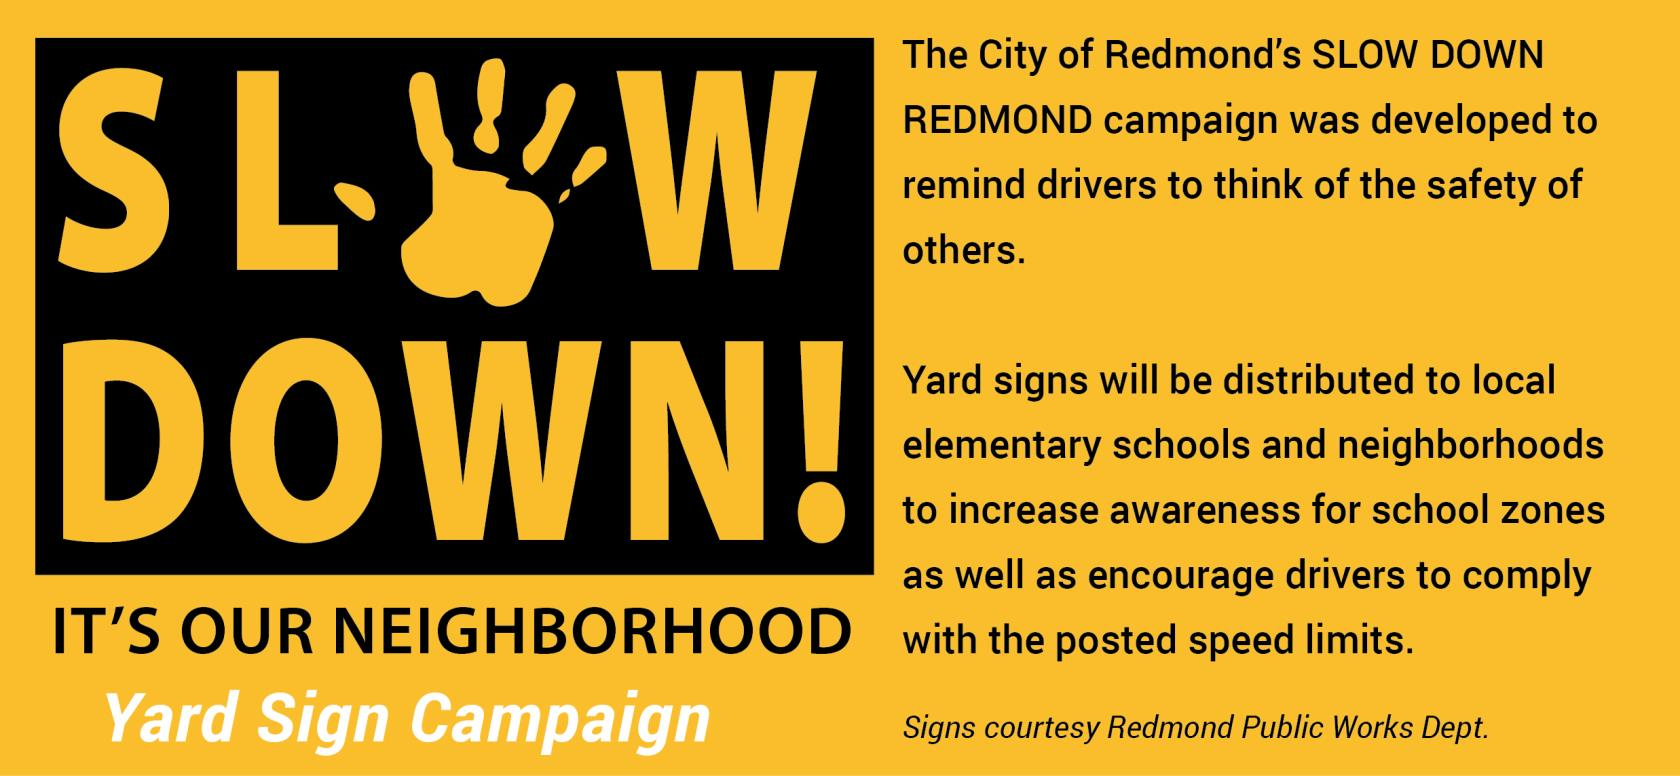 Slow Down Redmond sign web banner 2